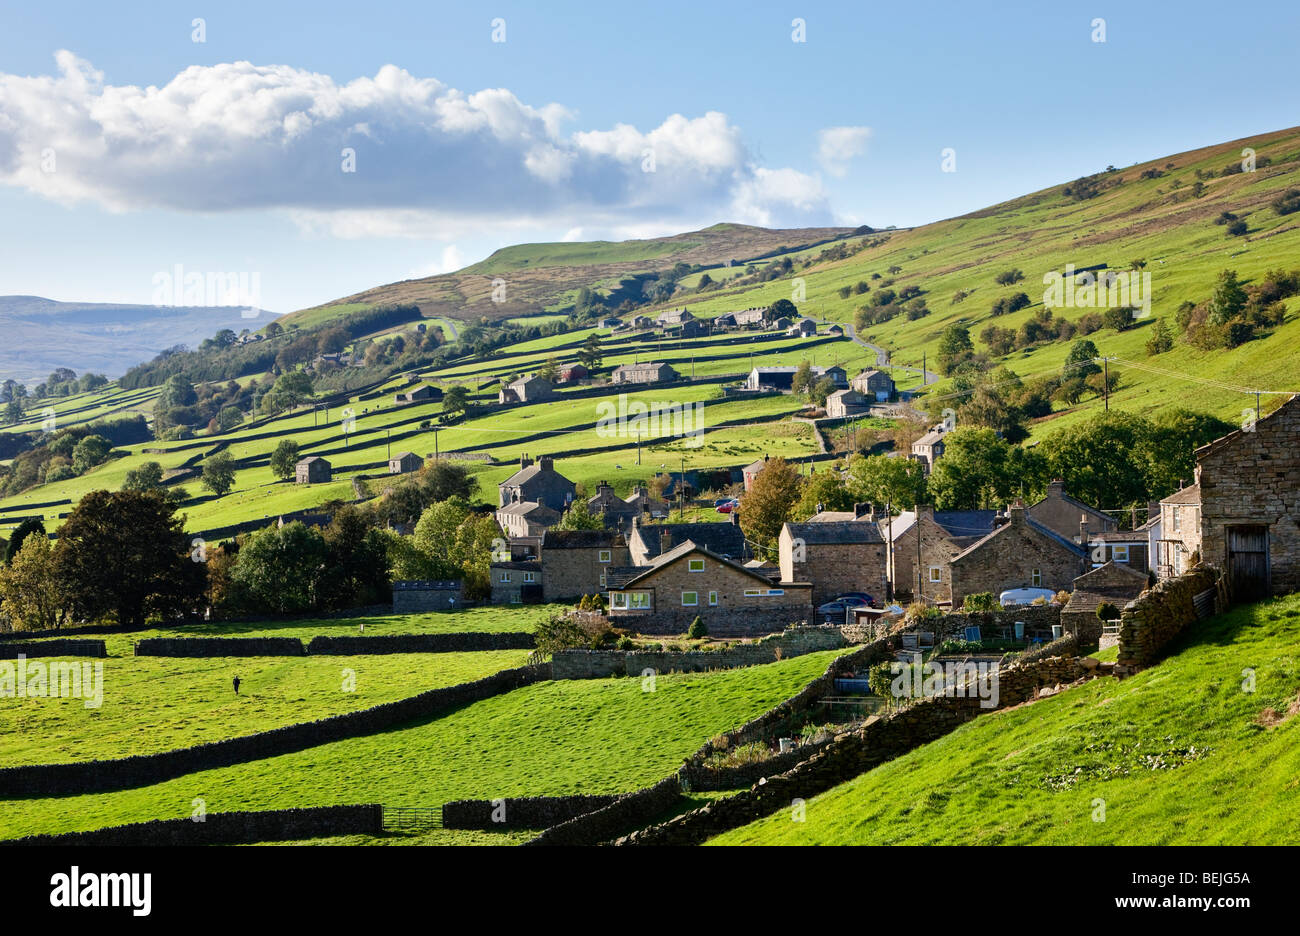 Yorkshire Dales village de Gunnerside dans Swaledale, North Yorkshire, Angleterre, campagne anglaise, UK Photo Stock